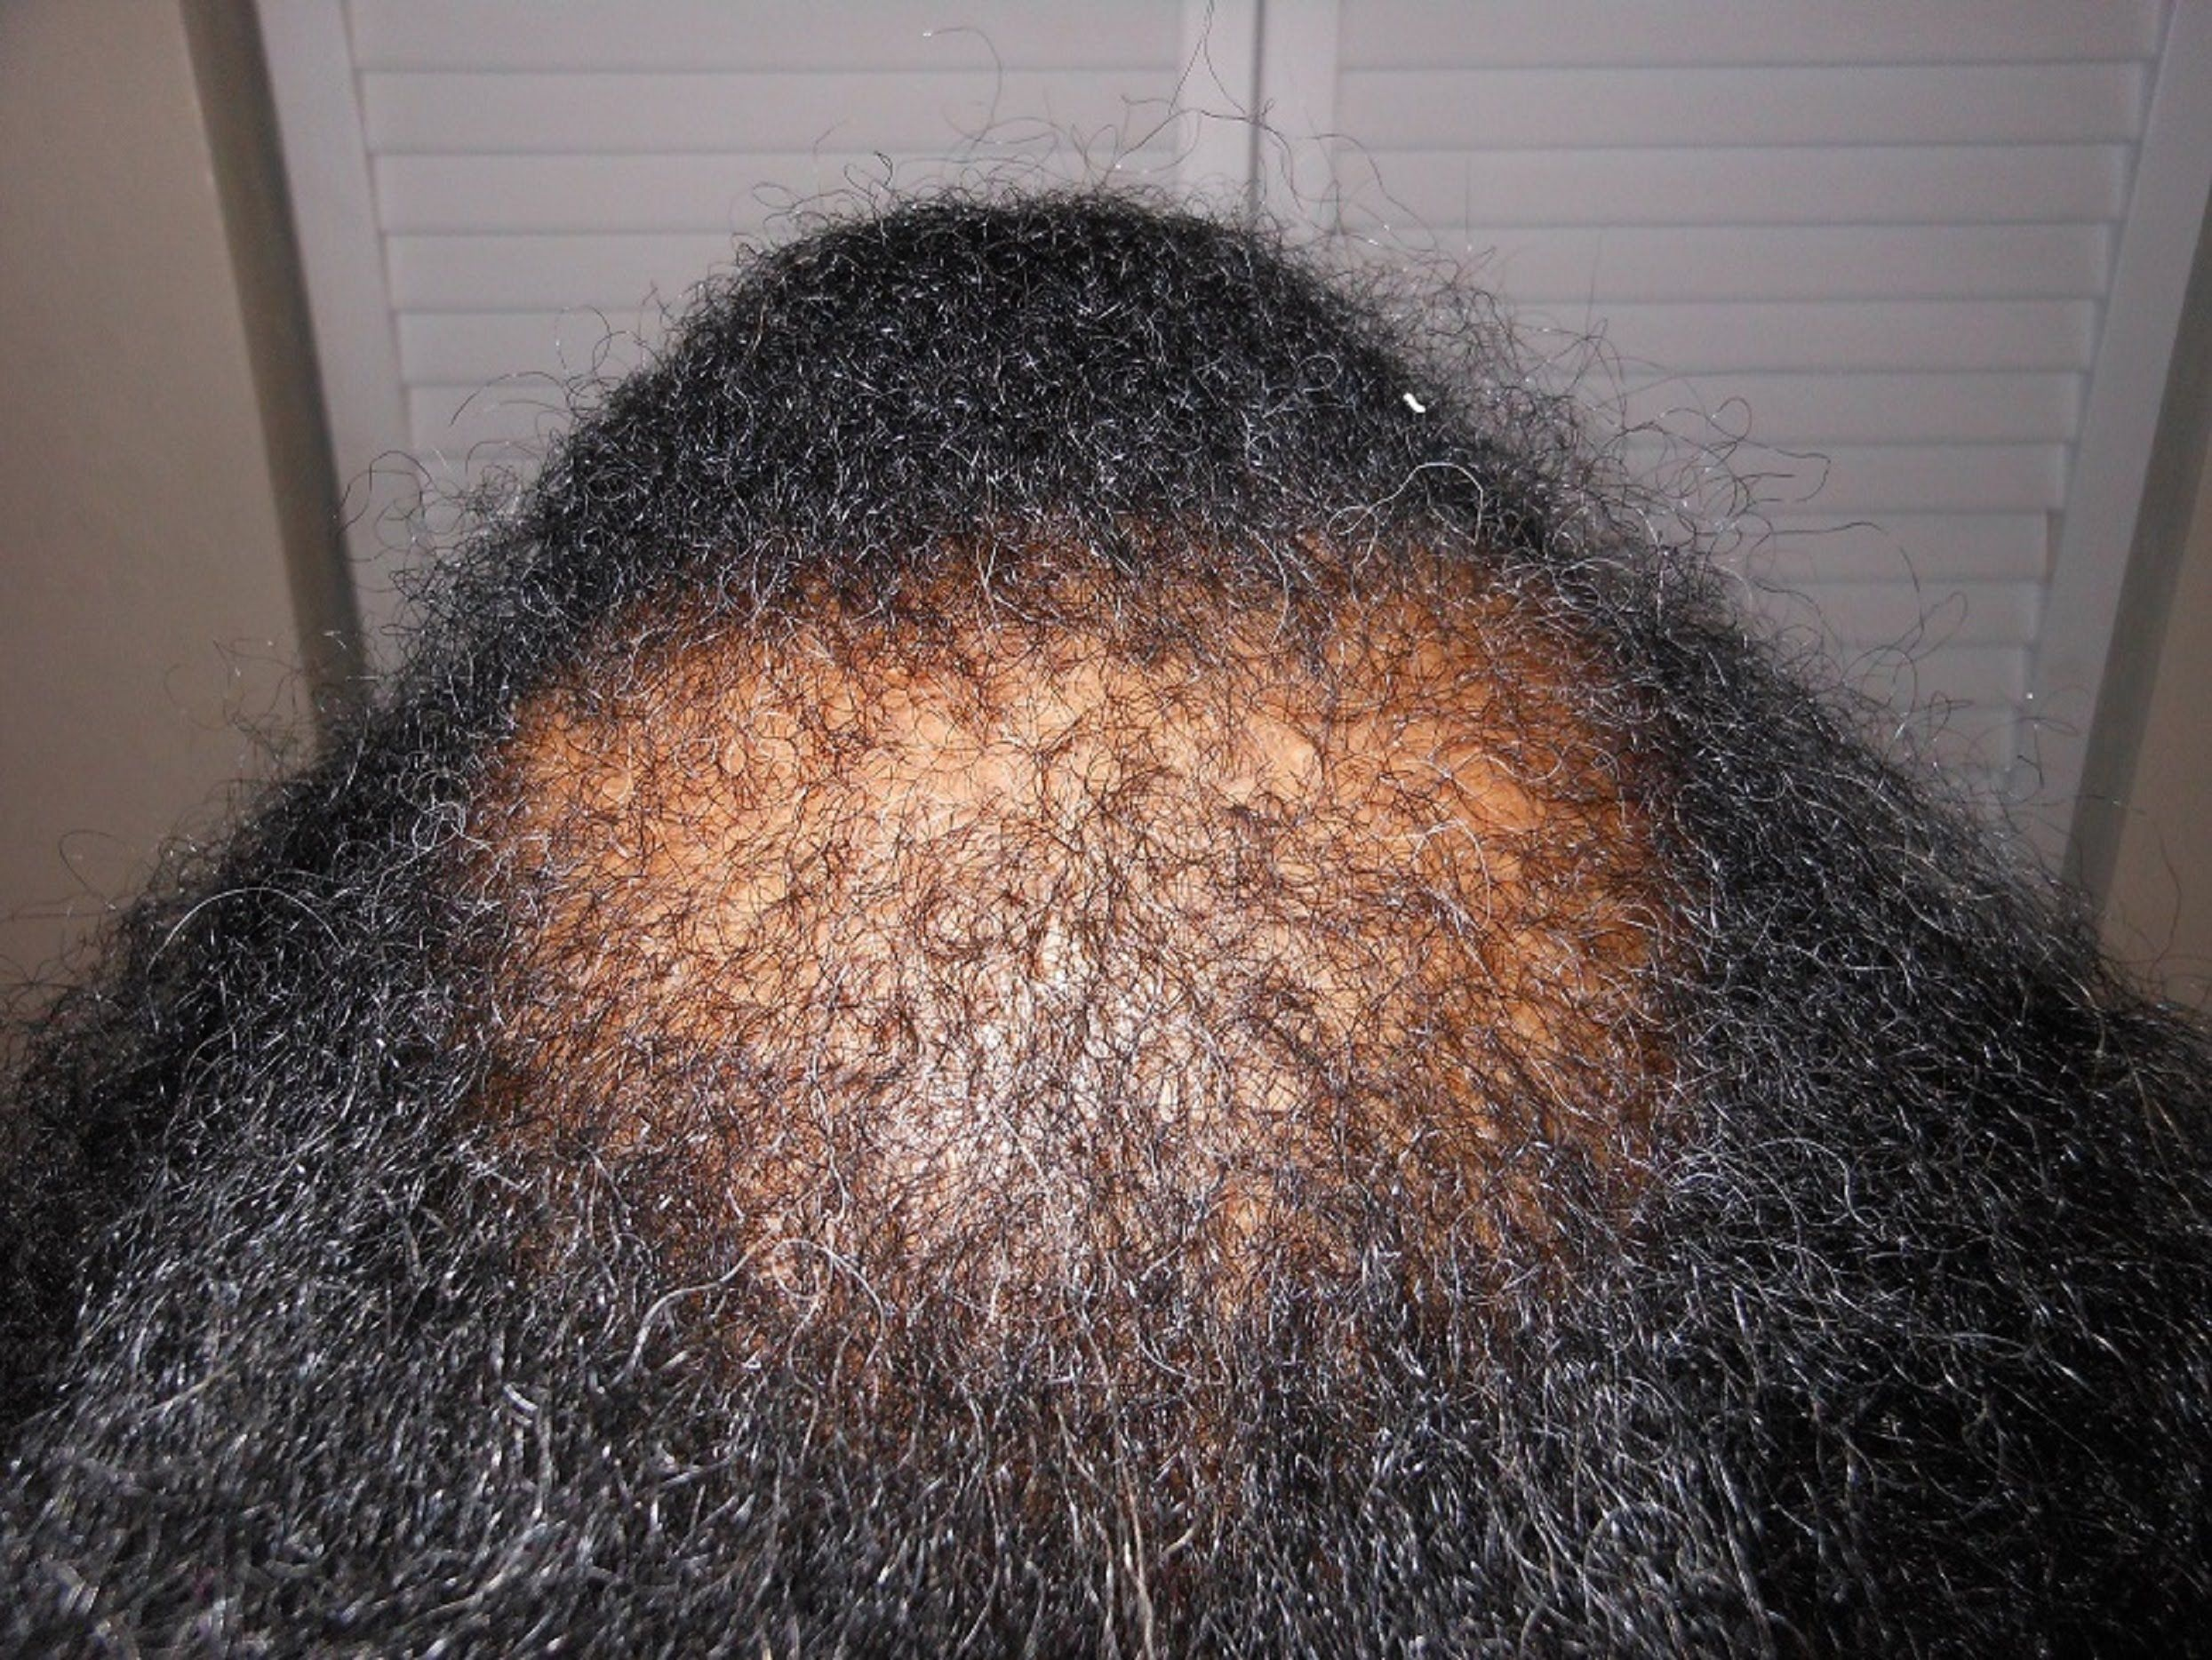 Treatment For Bald Spots And Thinning Hair Hair